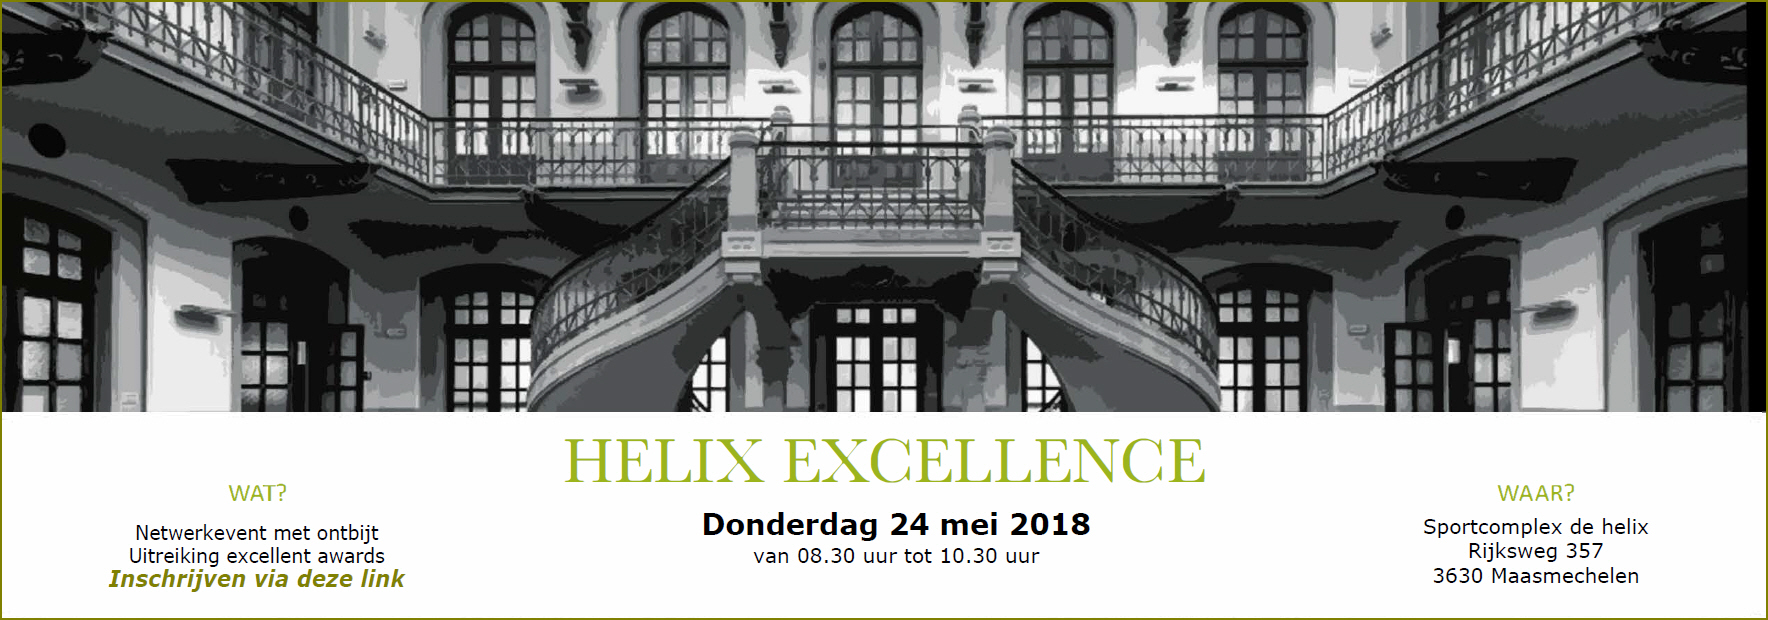 Helix excellence 2018